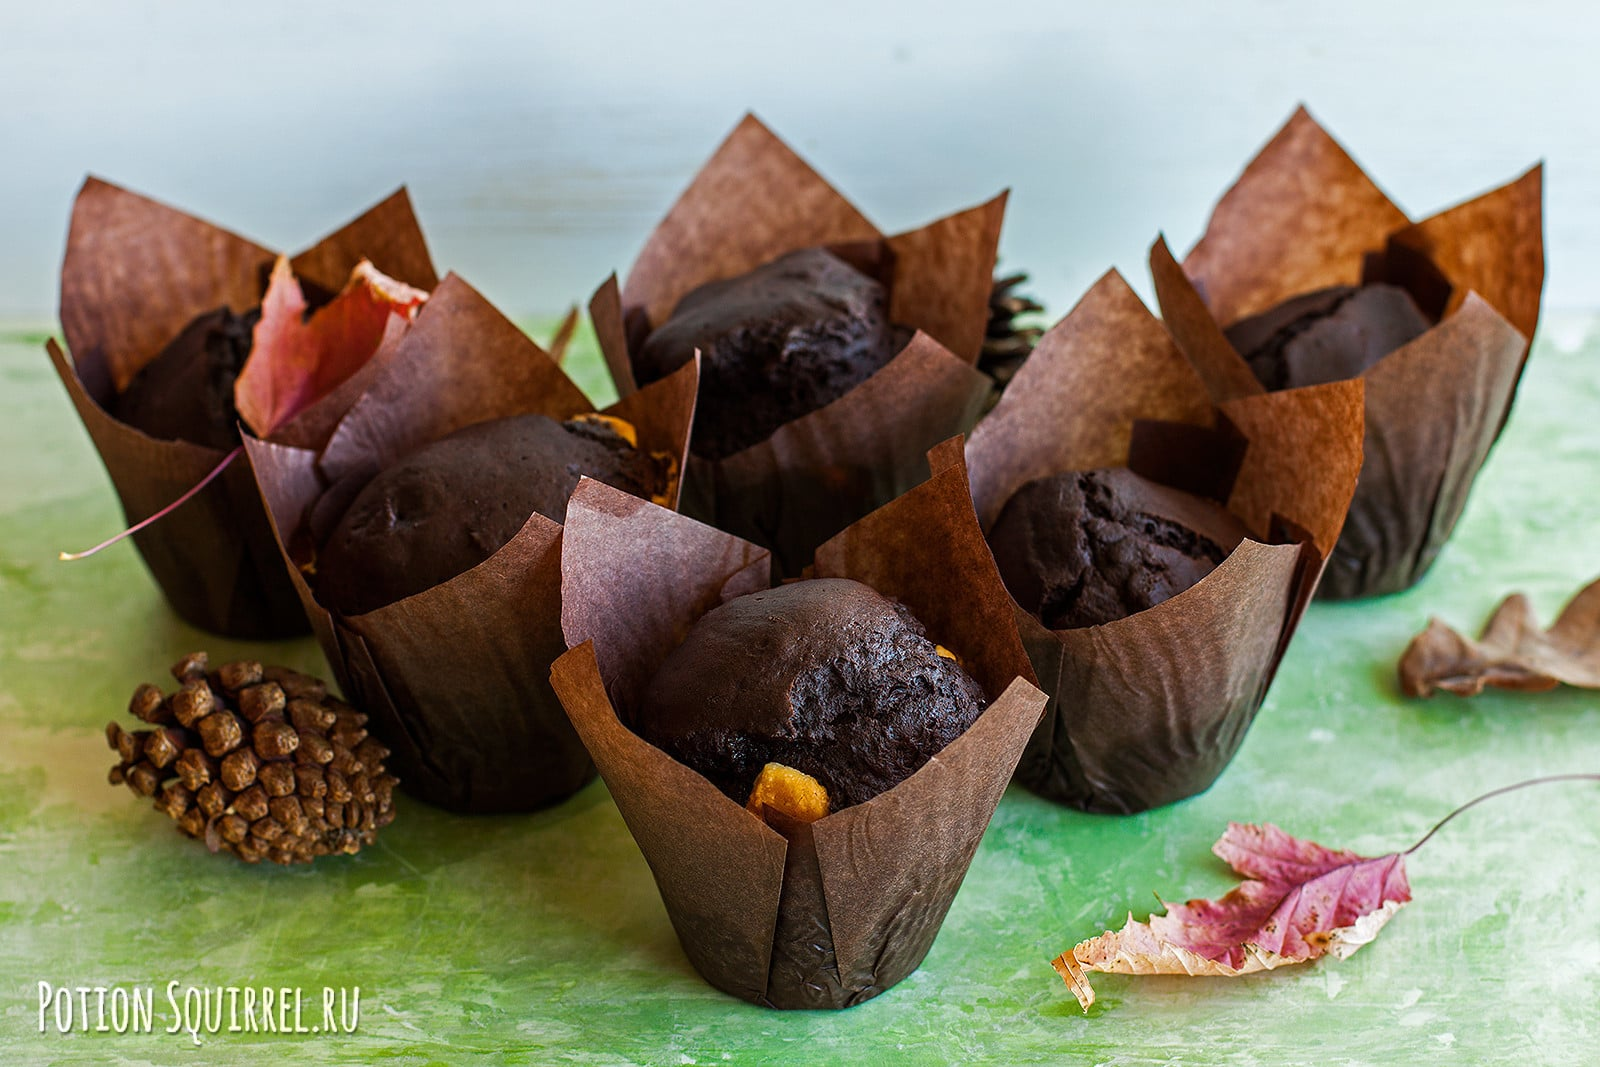 Recipe for chocolate muffins with pieces of dark and white chocolate from potionsquirrel.ru